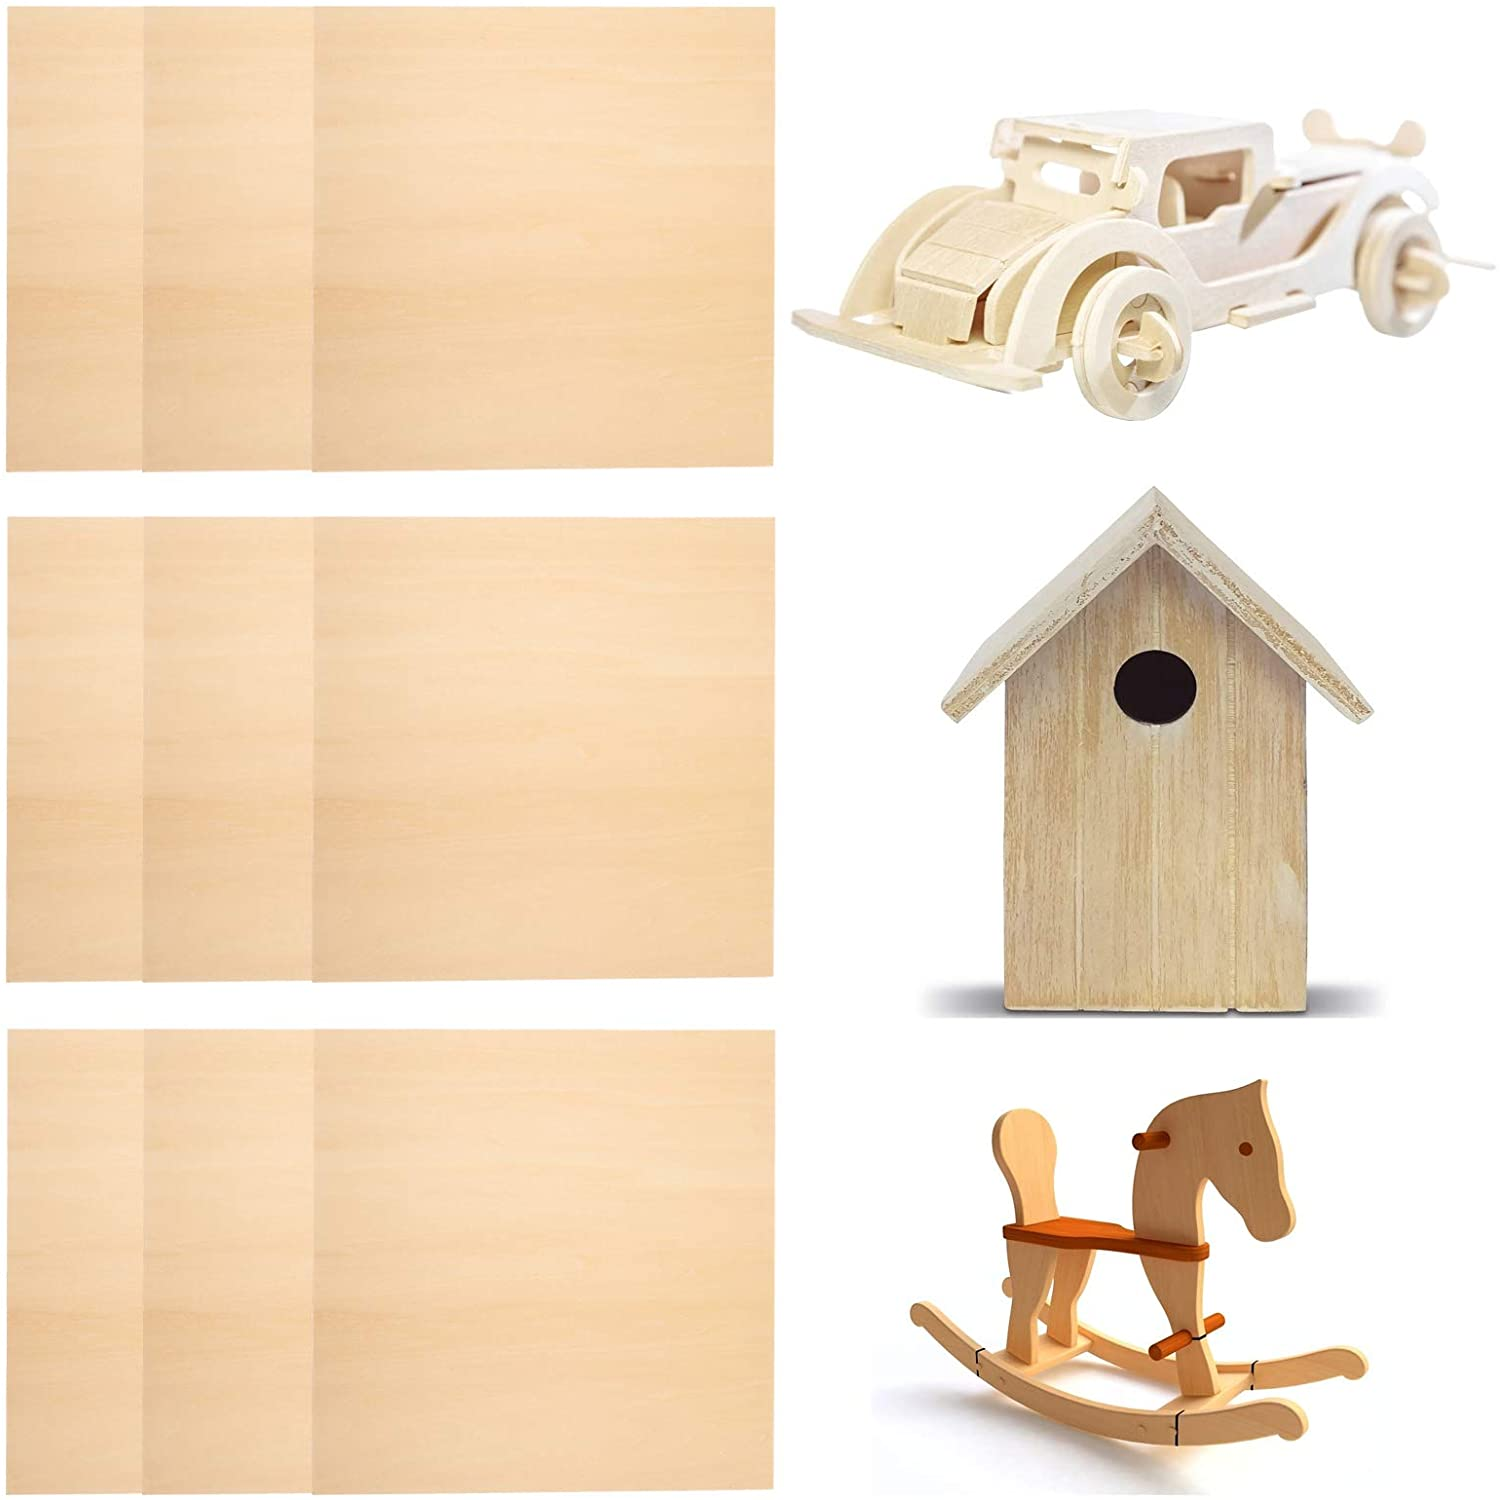 5 Pieces Basswood Wood Sheets Unfinished Wood Slices Blank Wooden Craft Sheets, 300 x 300 x 3 mm Thin Plywood for DIY Craft Hand-Made Project Mini House Building Wooden Plate Model Architectural Model